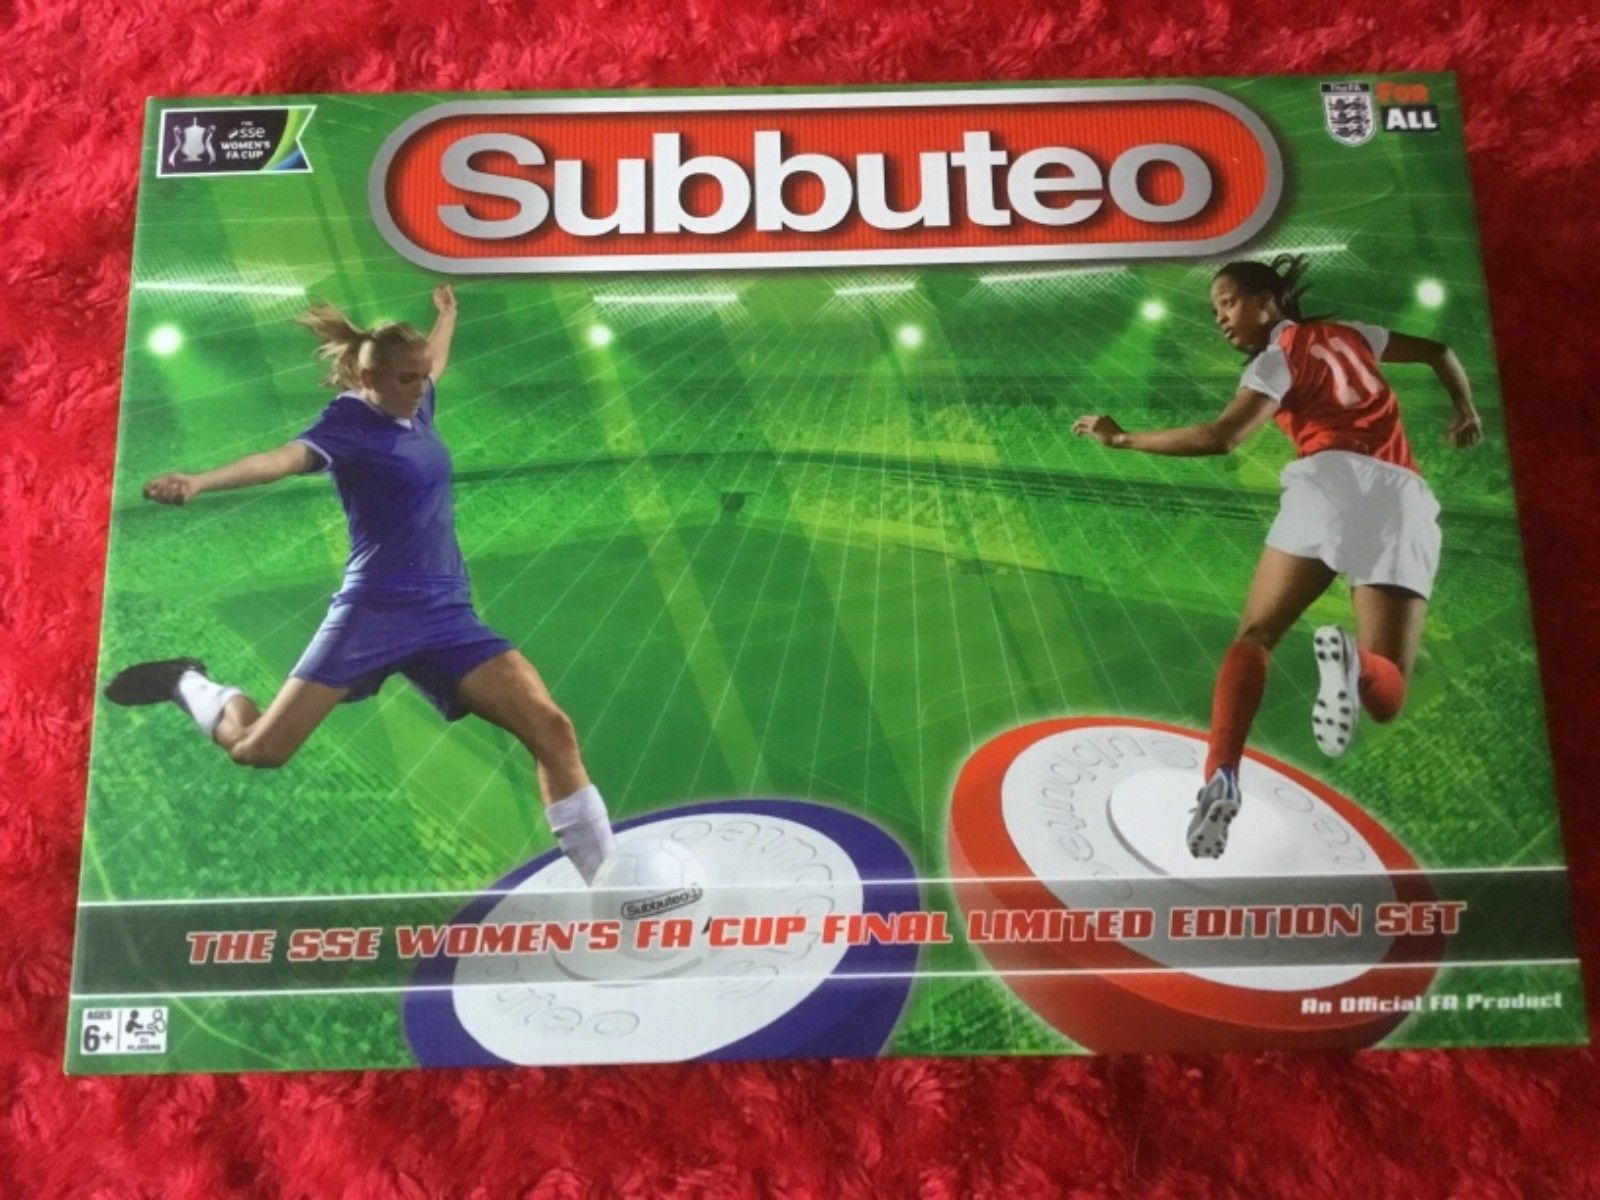 Another Women's football Subbuteo set is up for sale – but it's an own goal for Hasbro